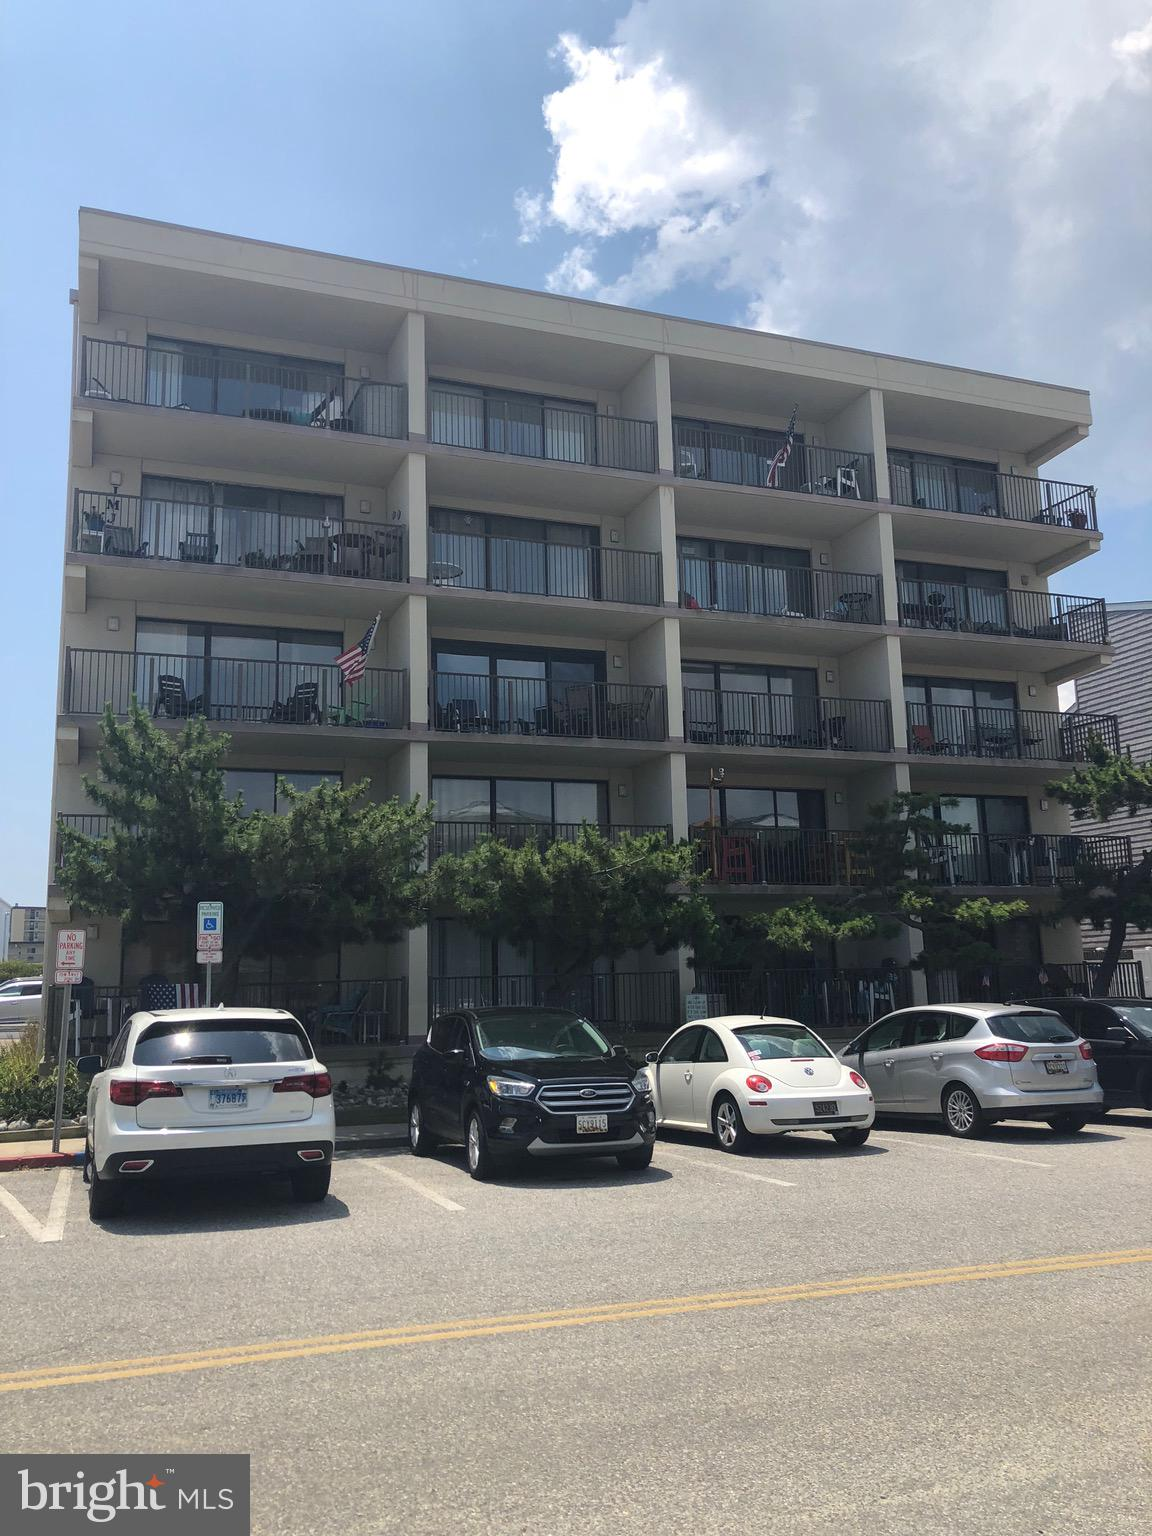 Fantastic 2BR 2FB condo only steps from the beach. A must see!!! One parking space included, sold fu